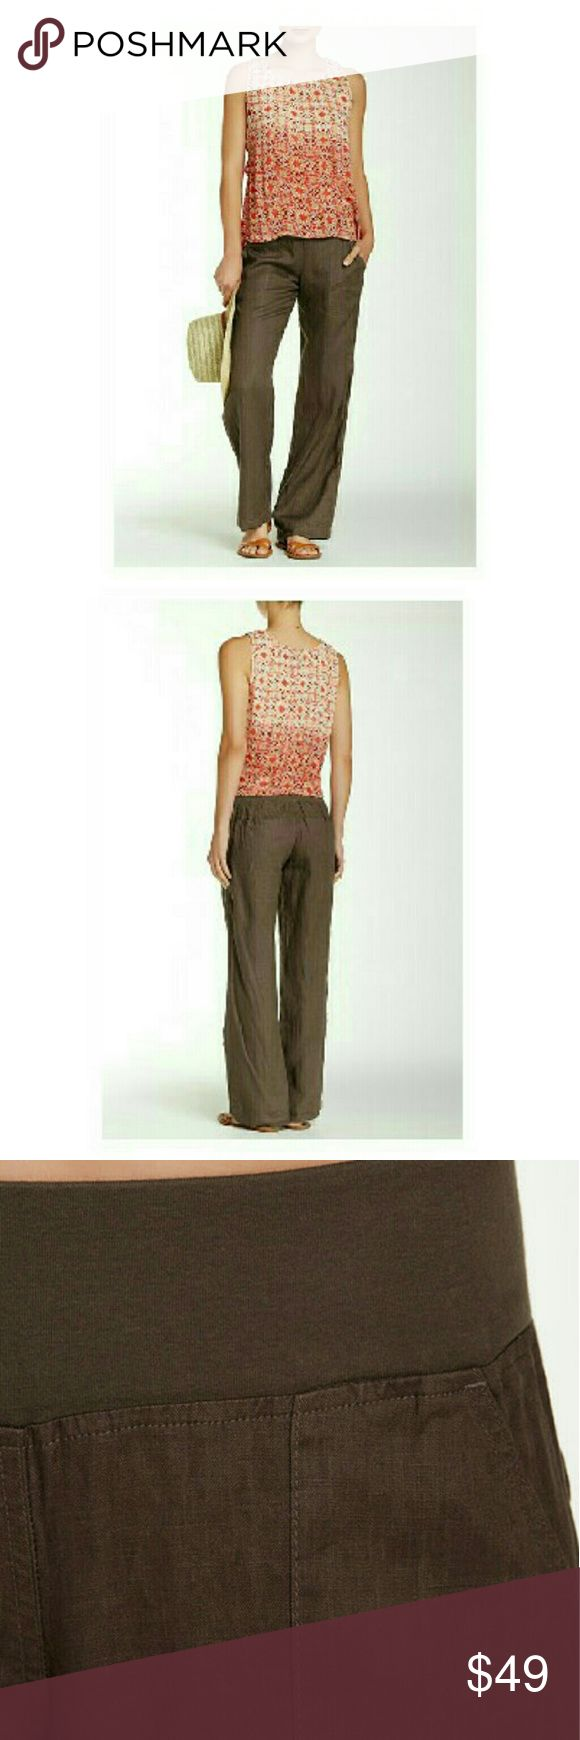 """Lazy Summer Days  II Arriving Wed. February 15th. Lazy Summer Days  Linen Lounge Pants in a rich earthy brown. While away your summer days in comfort and style in these linen lounge pants. Elastic waist, front slant pockets, back welt pockets, approximately 9"""" rise and 31"""" inseam. 100% LINEN color is Mushroom Model has 23.5"""" waist and 35"""" hips and is wearing a small. Pants"""